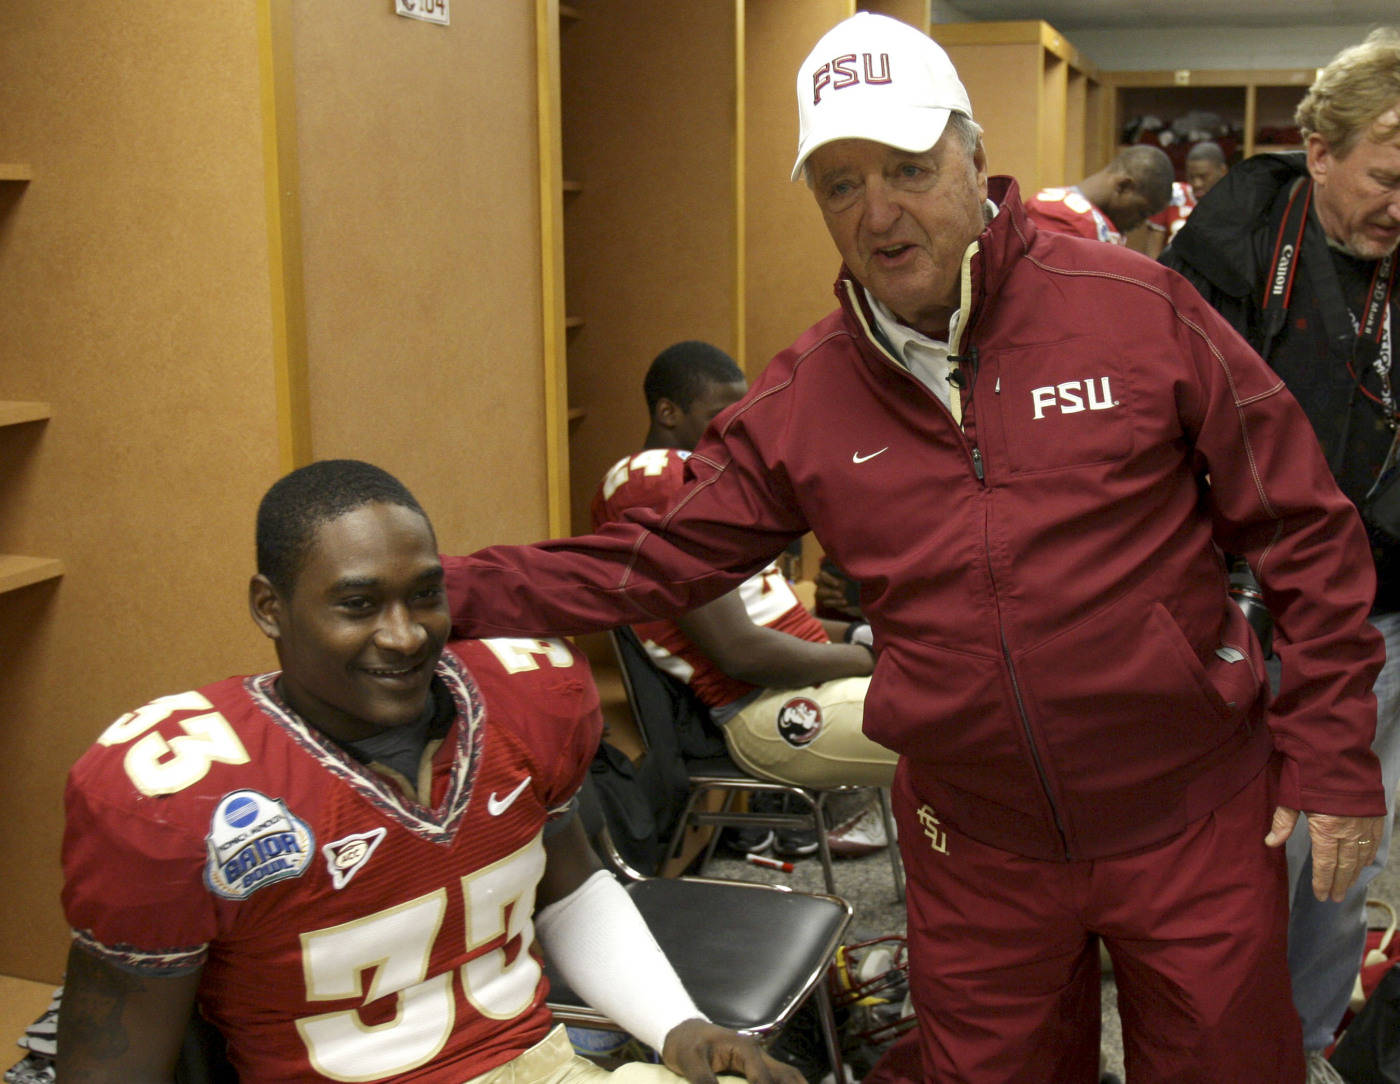 Florida State head coach, Bobby Bowden, right, visits withrunning back Ty Jones in the locker room prior to the Gator Bowl NCAA college football game against West Virginia, Friday, Jan. 1, 2010, in Jacksonville, Fla.(AP Photo/Phil Coale)